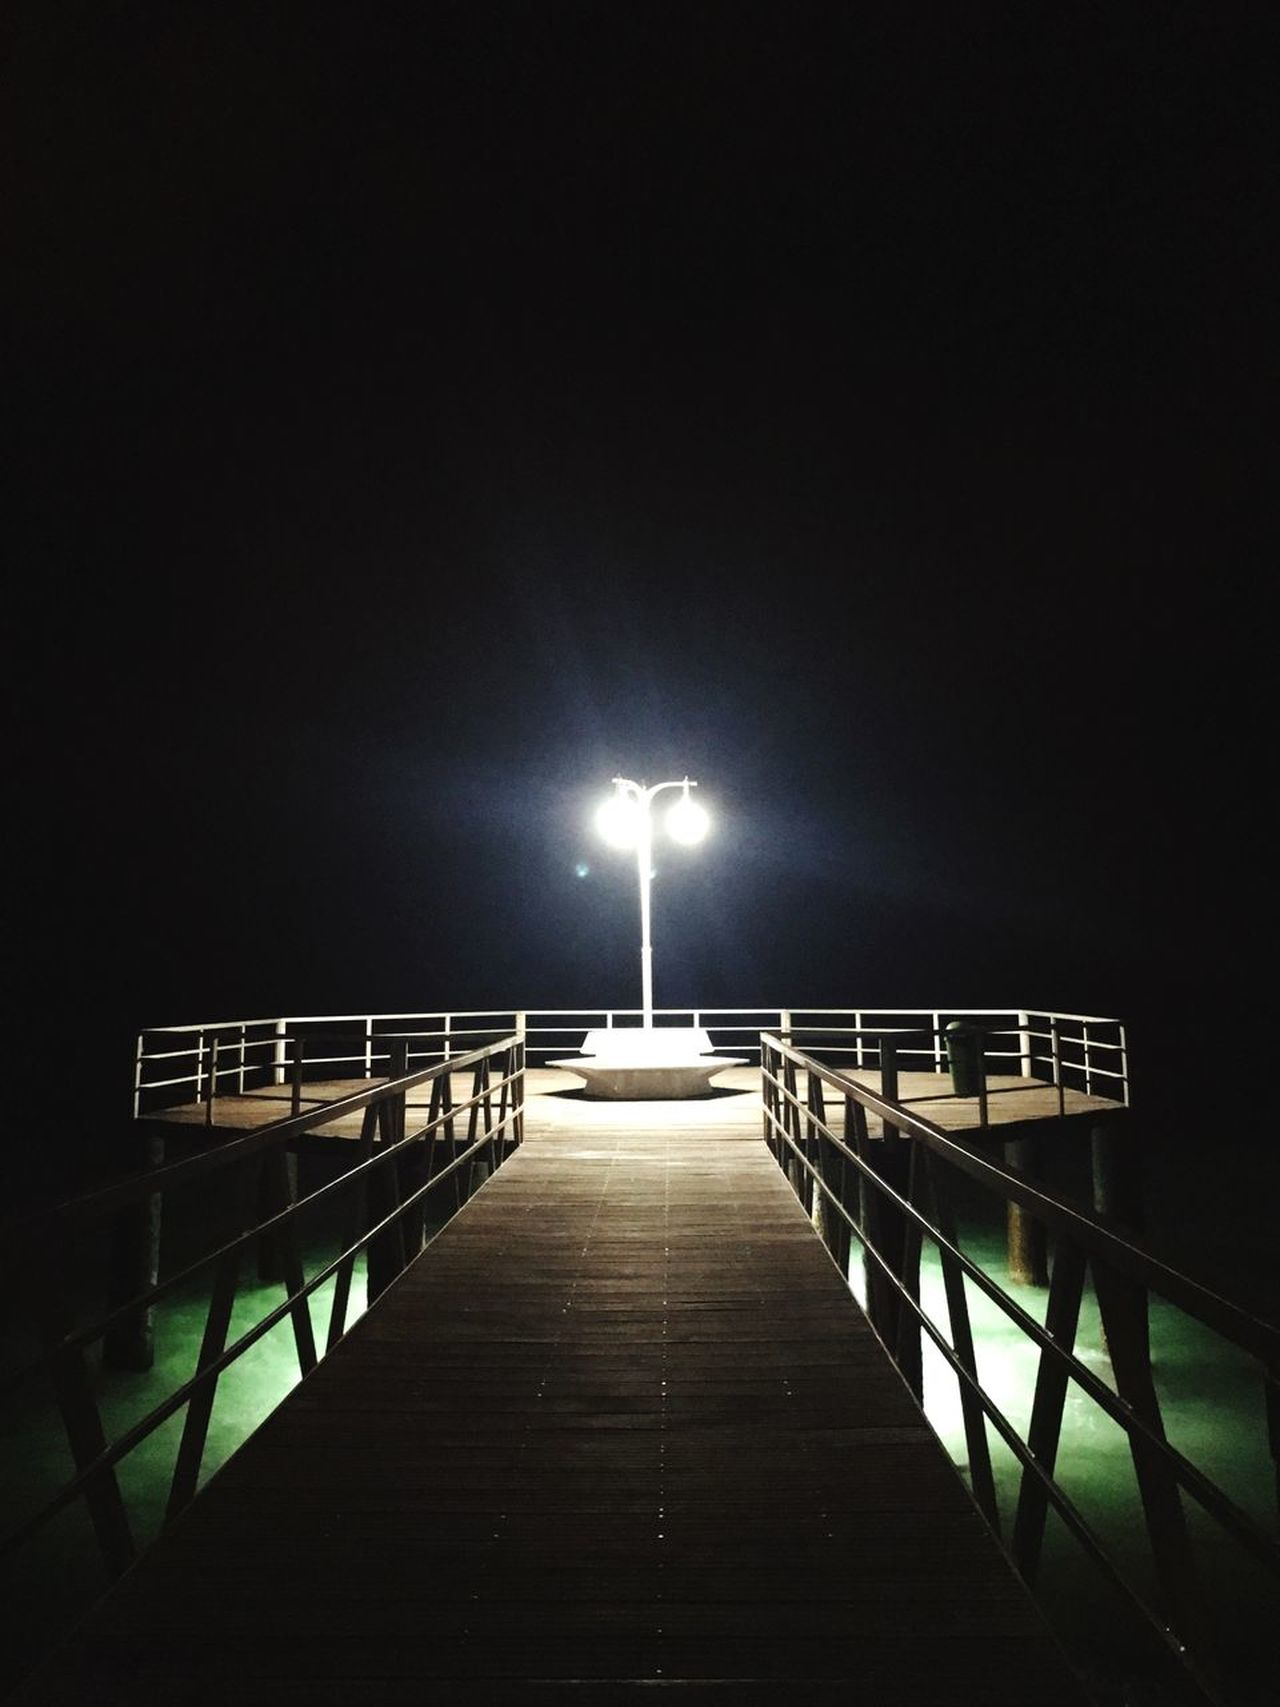 Night Illuminated Sea No People Tourism Scenics The Street Photographer - 2017 EyeEm Awards BYOPaper! Full Frame Backgrounds Tranquil Scene EyeEmNewHere The Great Outdoors - 2017 EyeEm Awards Built Structure The Photojournalist - 2017 EyeEm Awards Live For The Story Nature Beach Lifestyles Vacations Tranquility